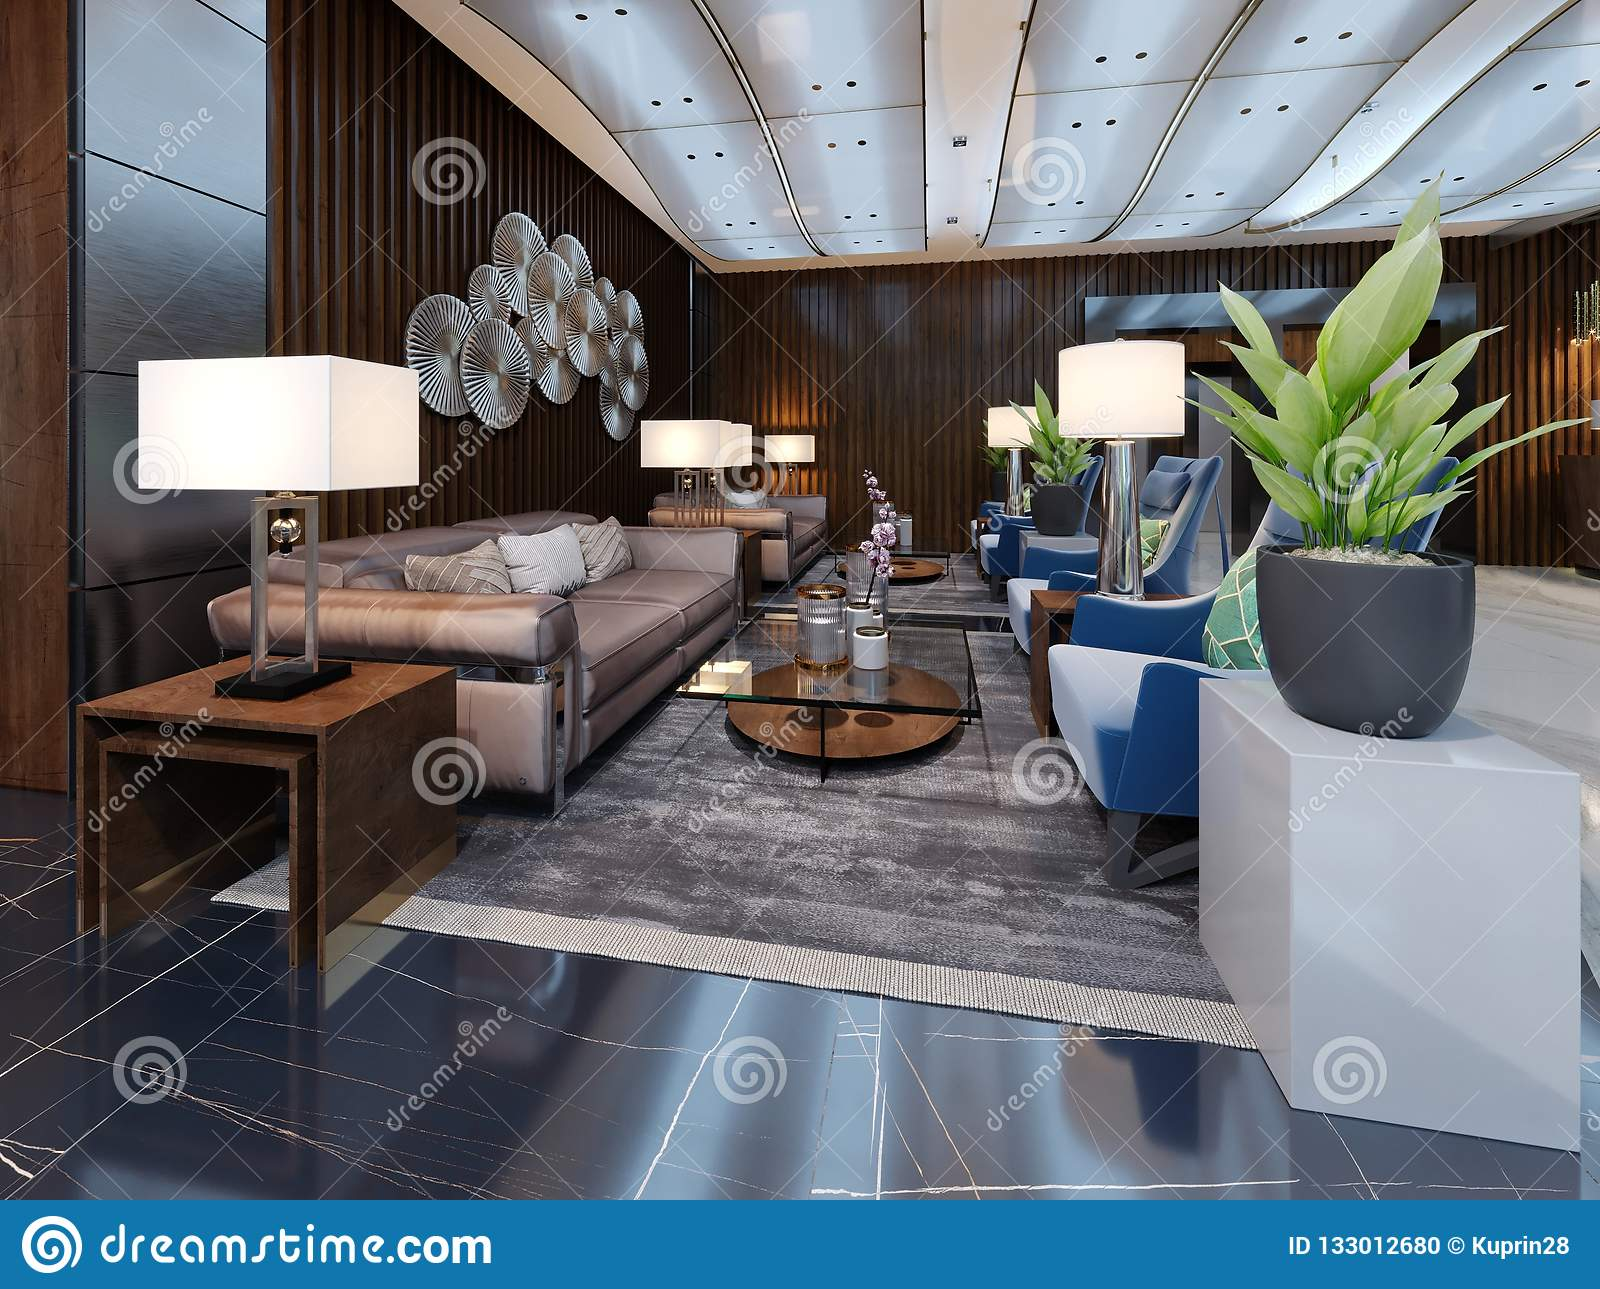 Luxury Lounge Entrance Area In Hotel With Leather Sofa And Fabric Armchair Designer White Cabinets With A Flower Pot And Wooden Stock Illustration Illustration Of Lamp Hallway 133012680